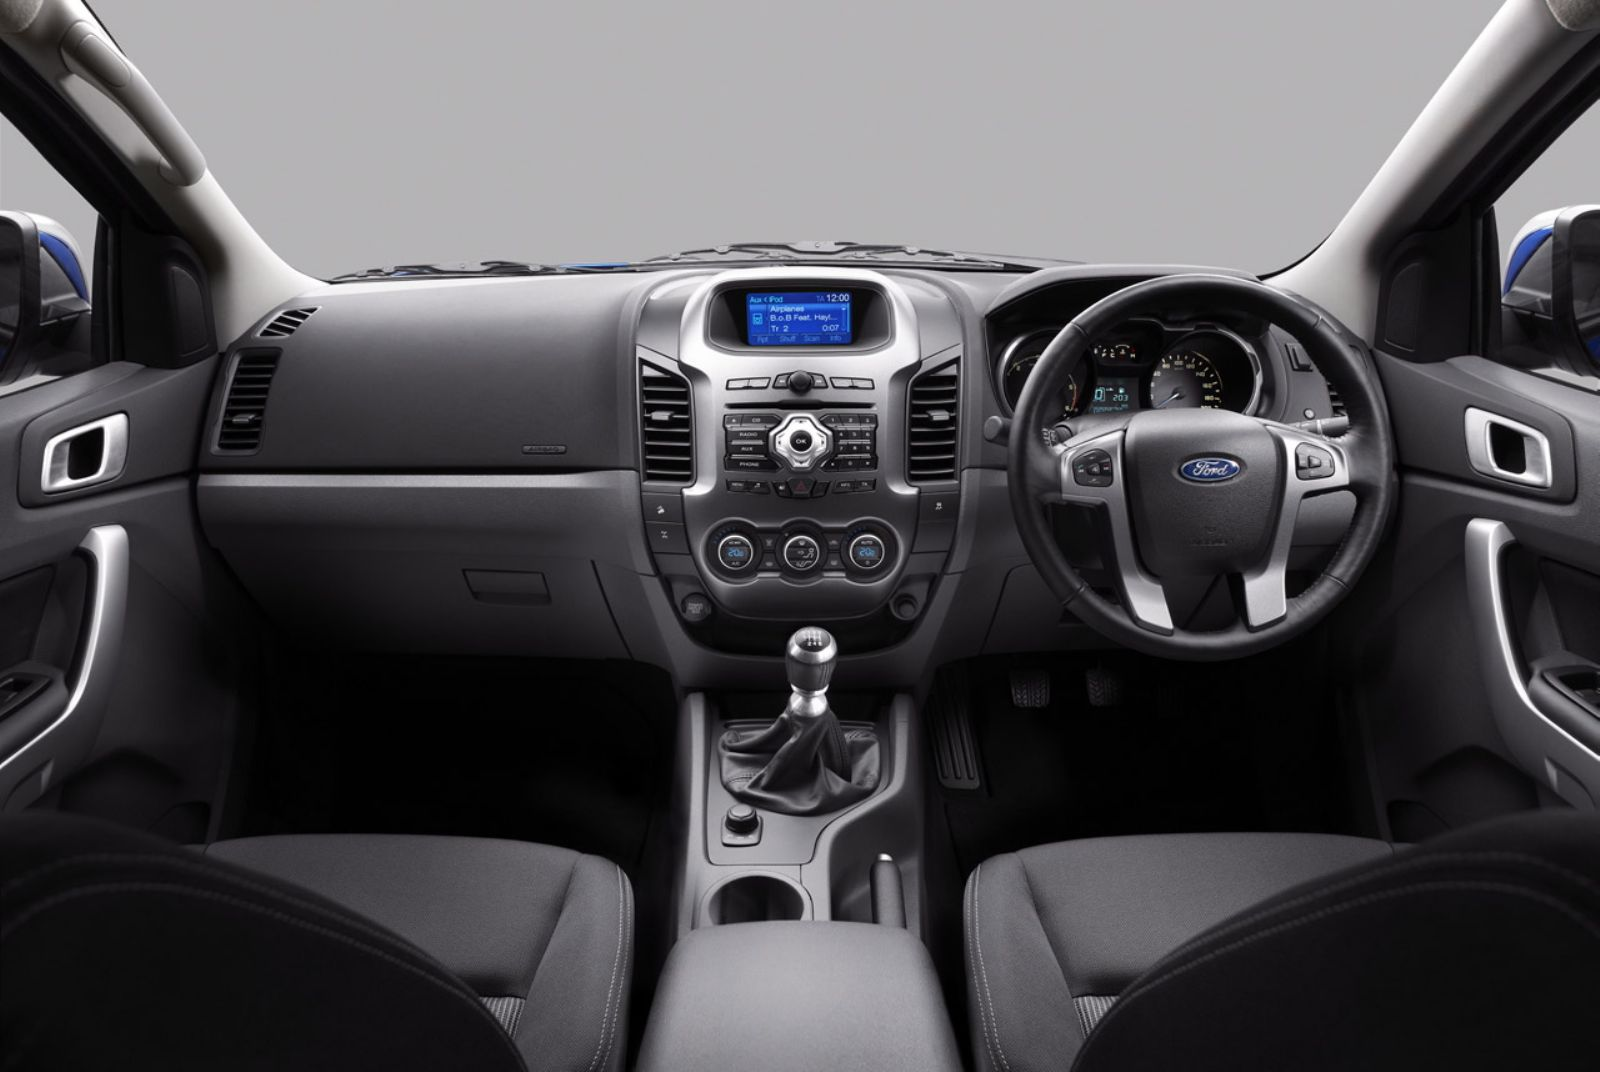 2012 Ford Endeavour Interiors